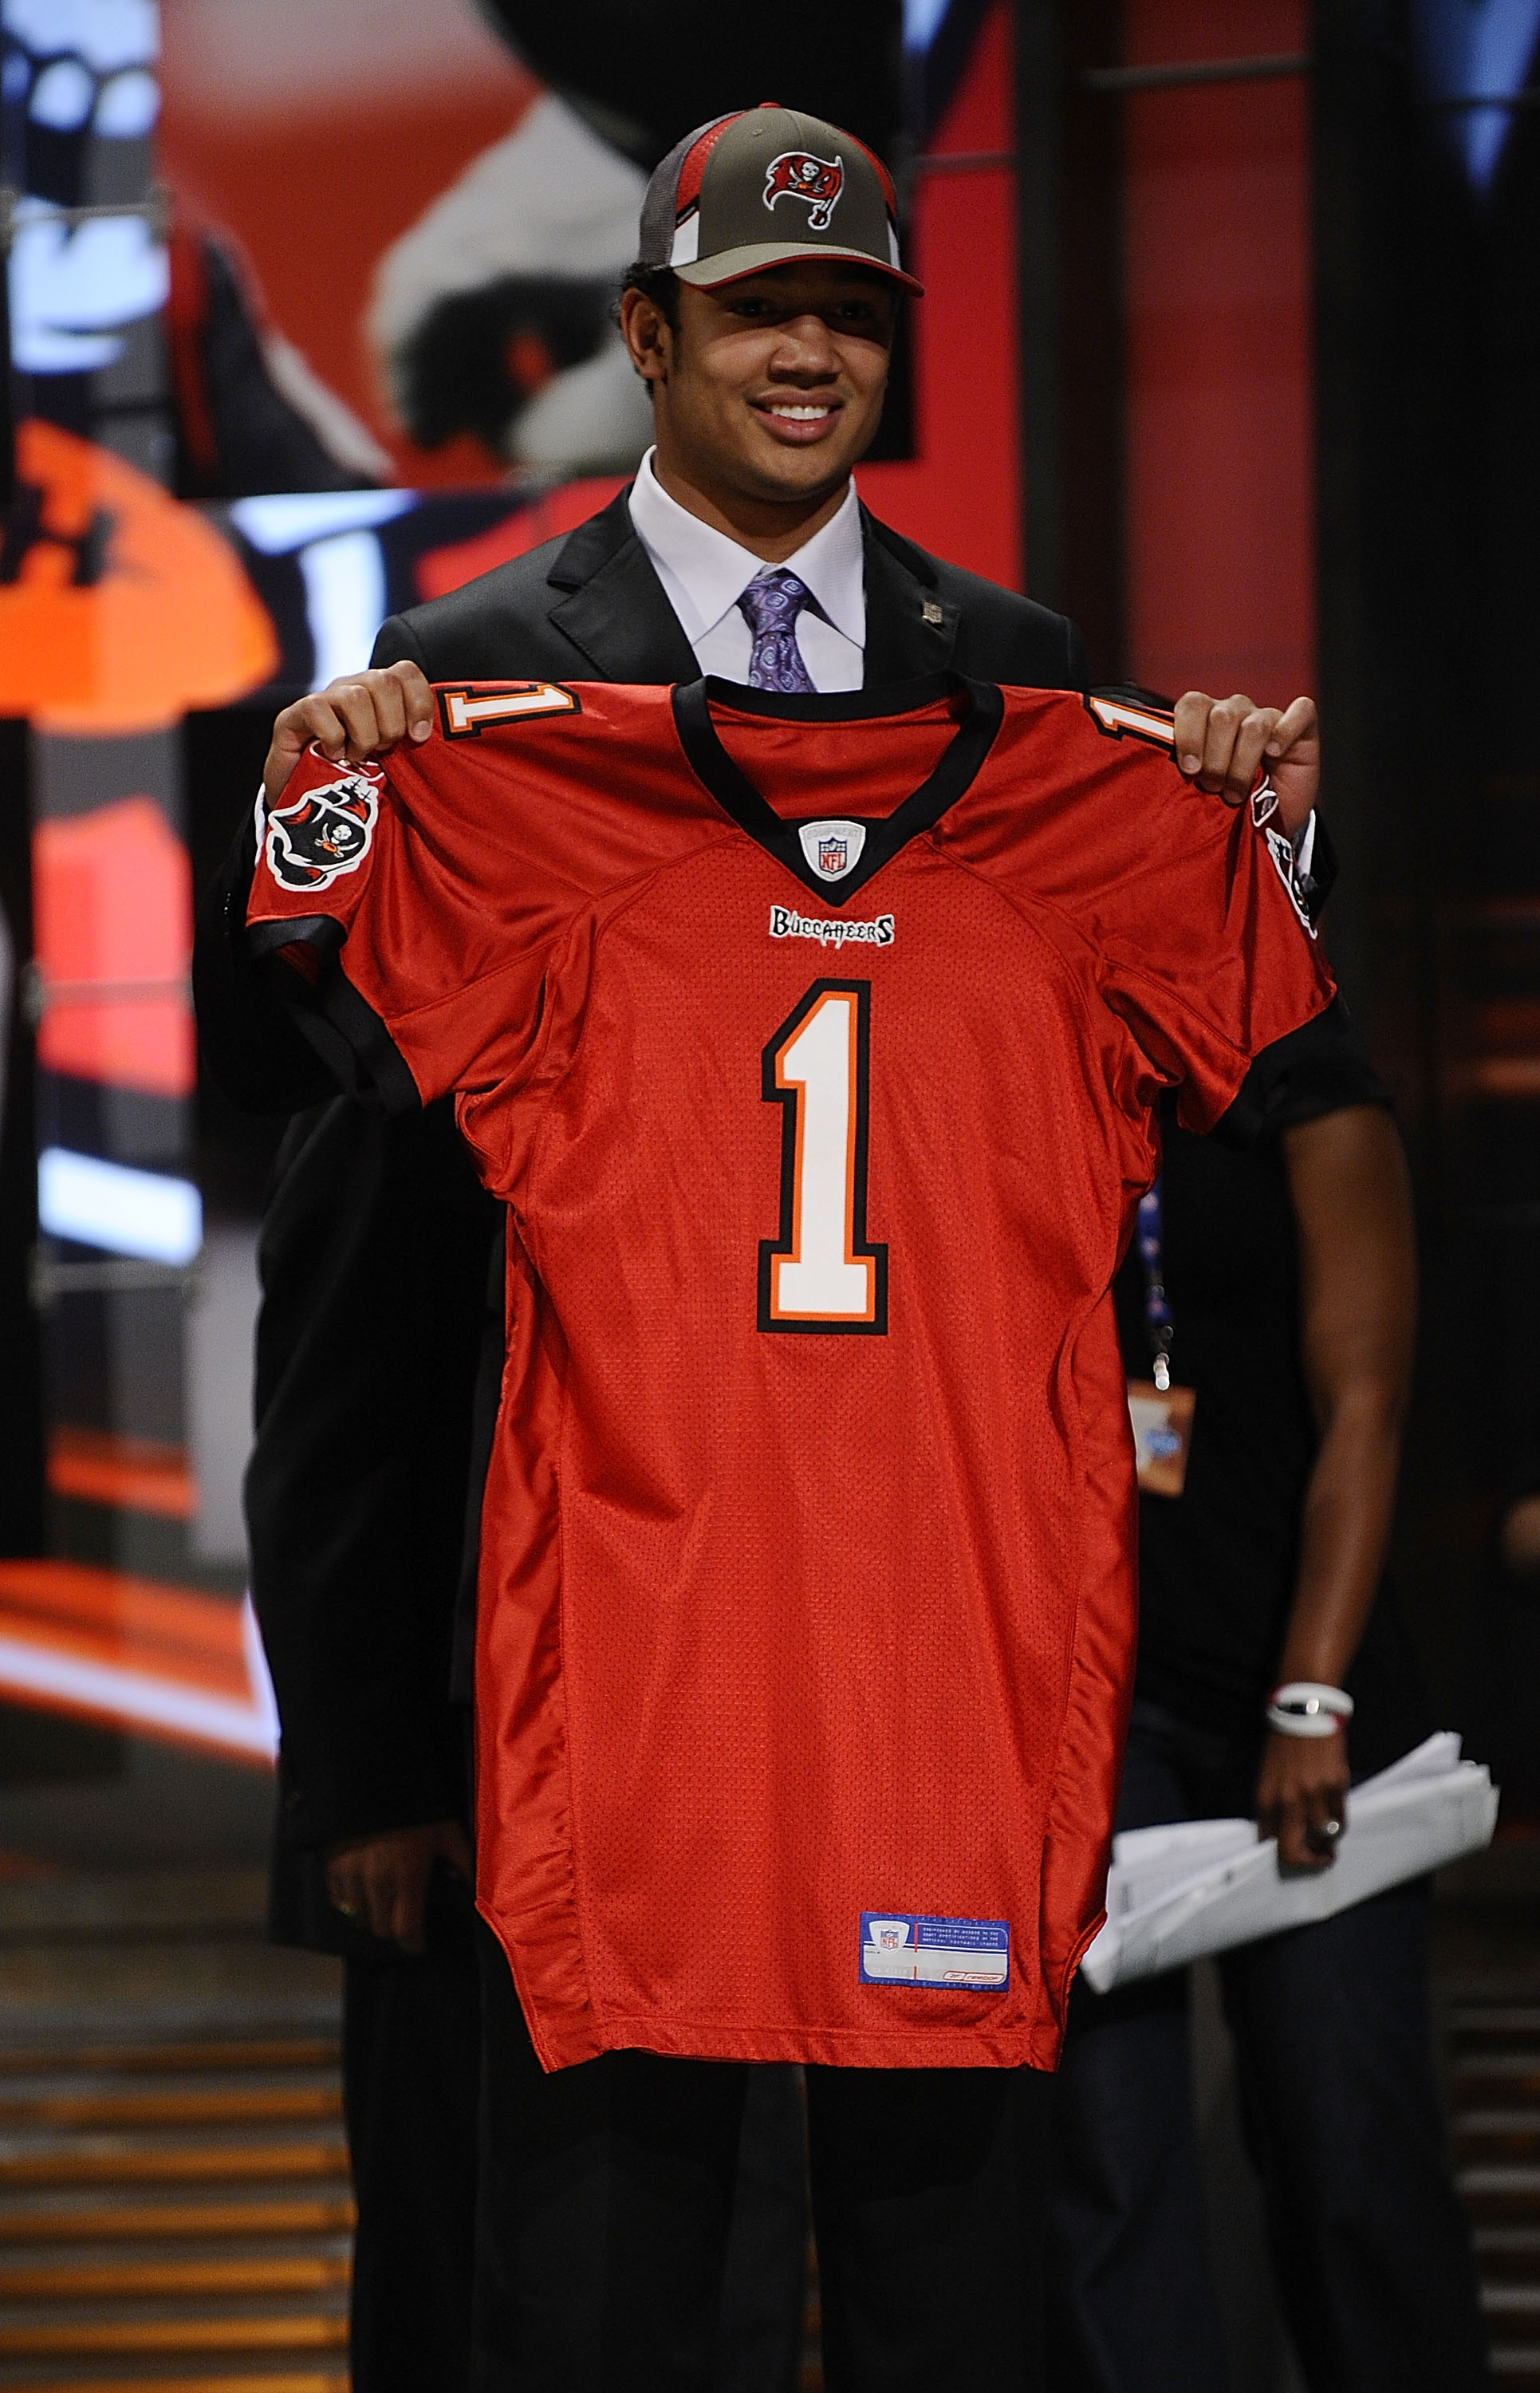 The Bucs hope they strike gold again like they did with Josh Freeman.